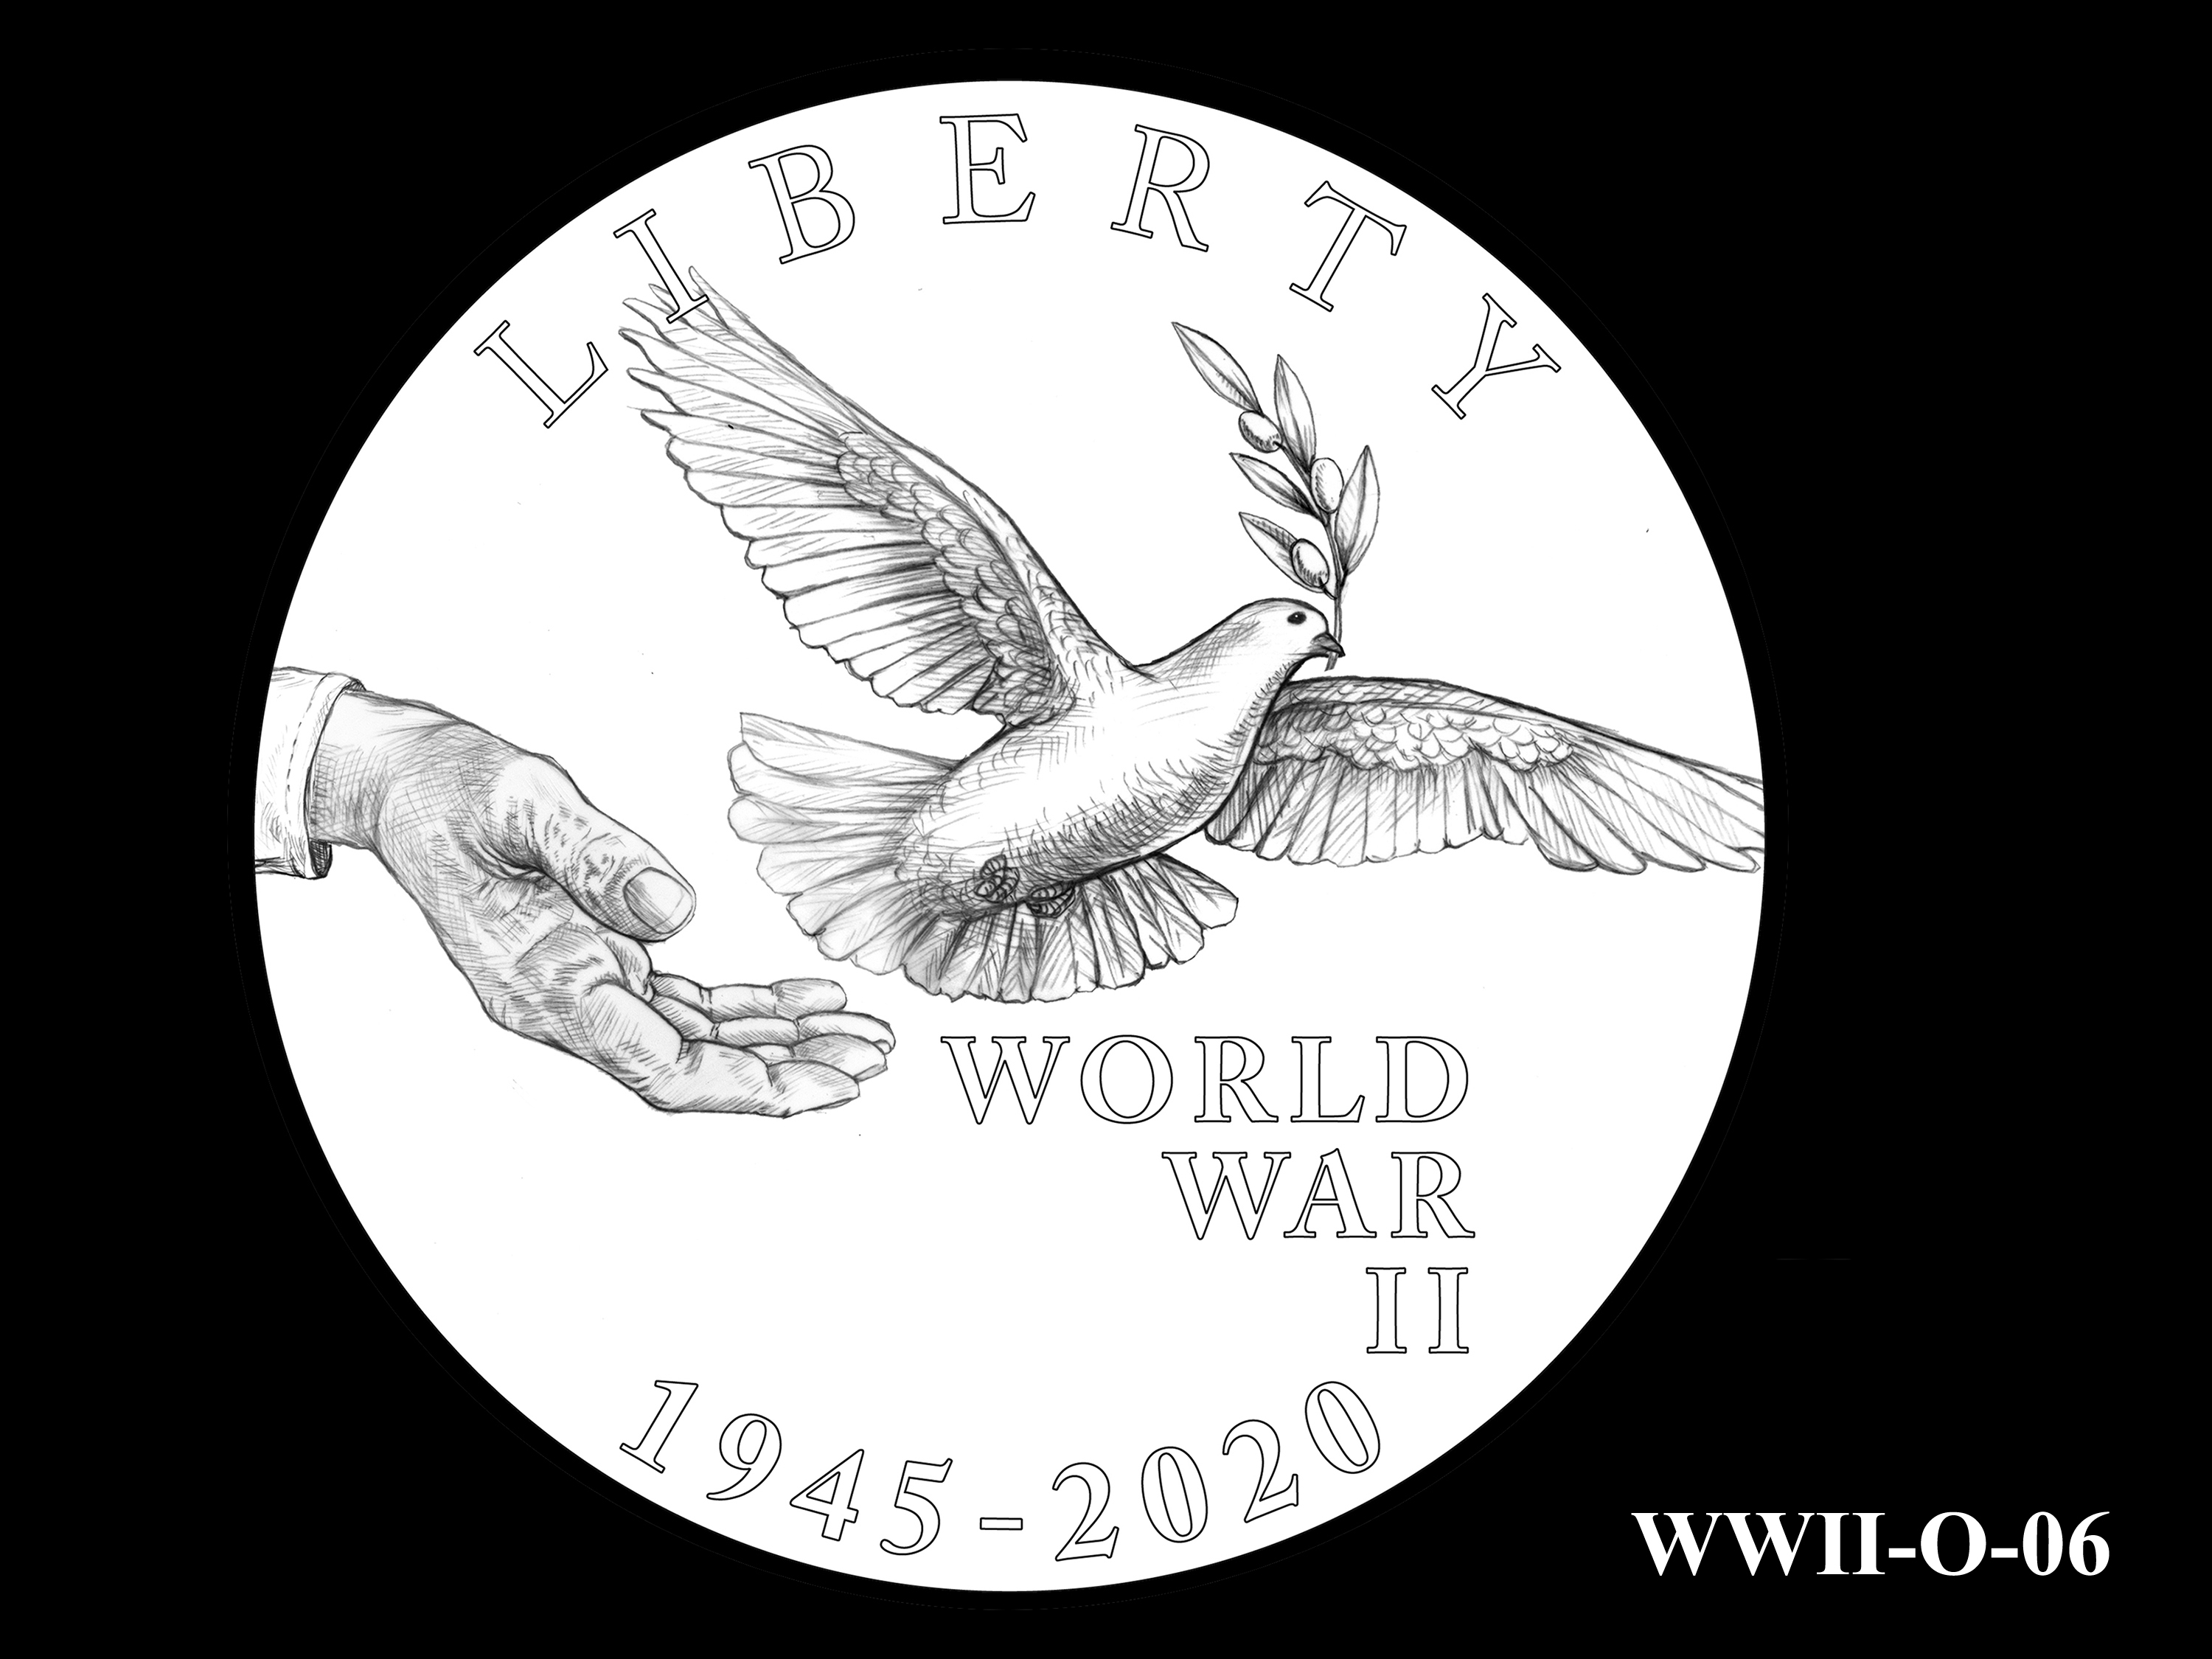 WWII-O-06 --End of World War II 75th Anniversary Program - Obverse